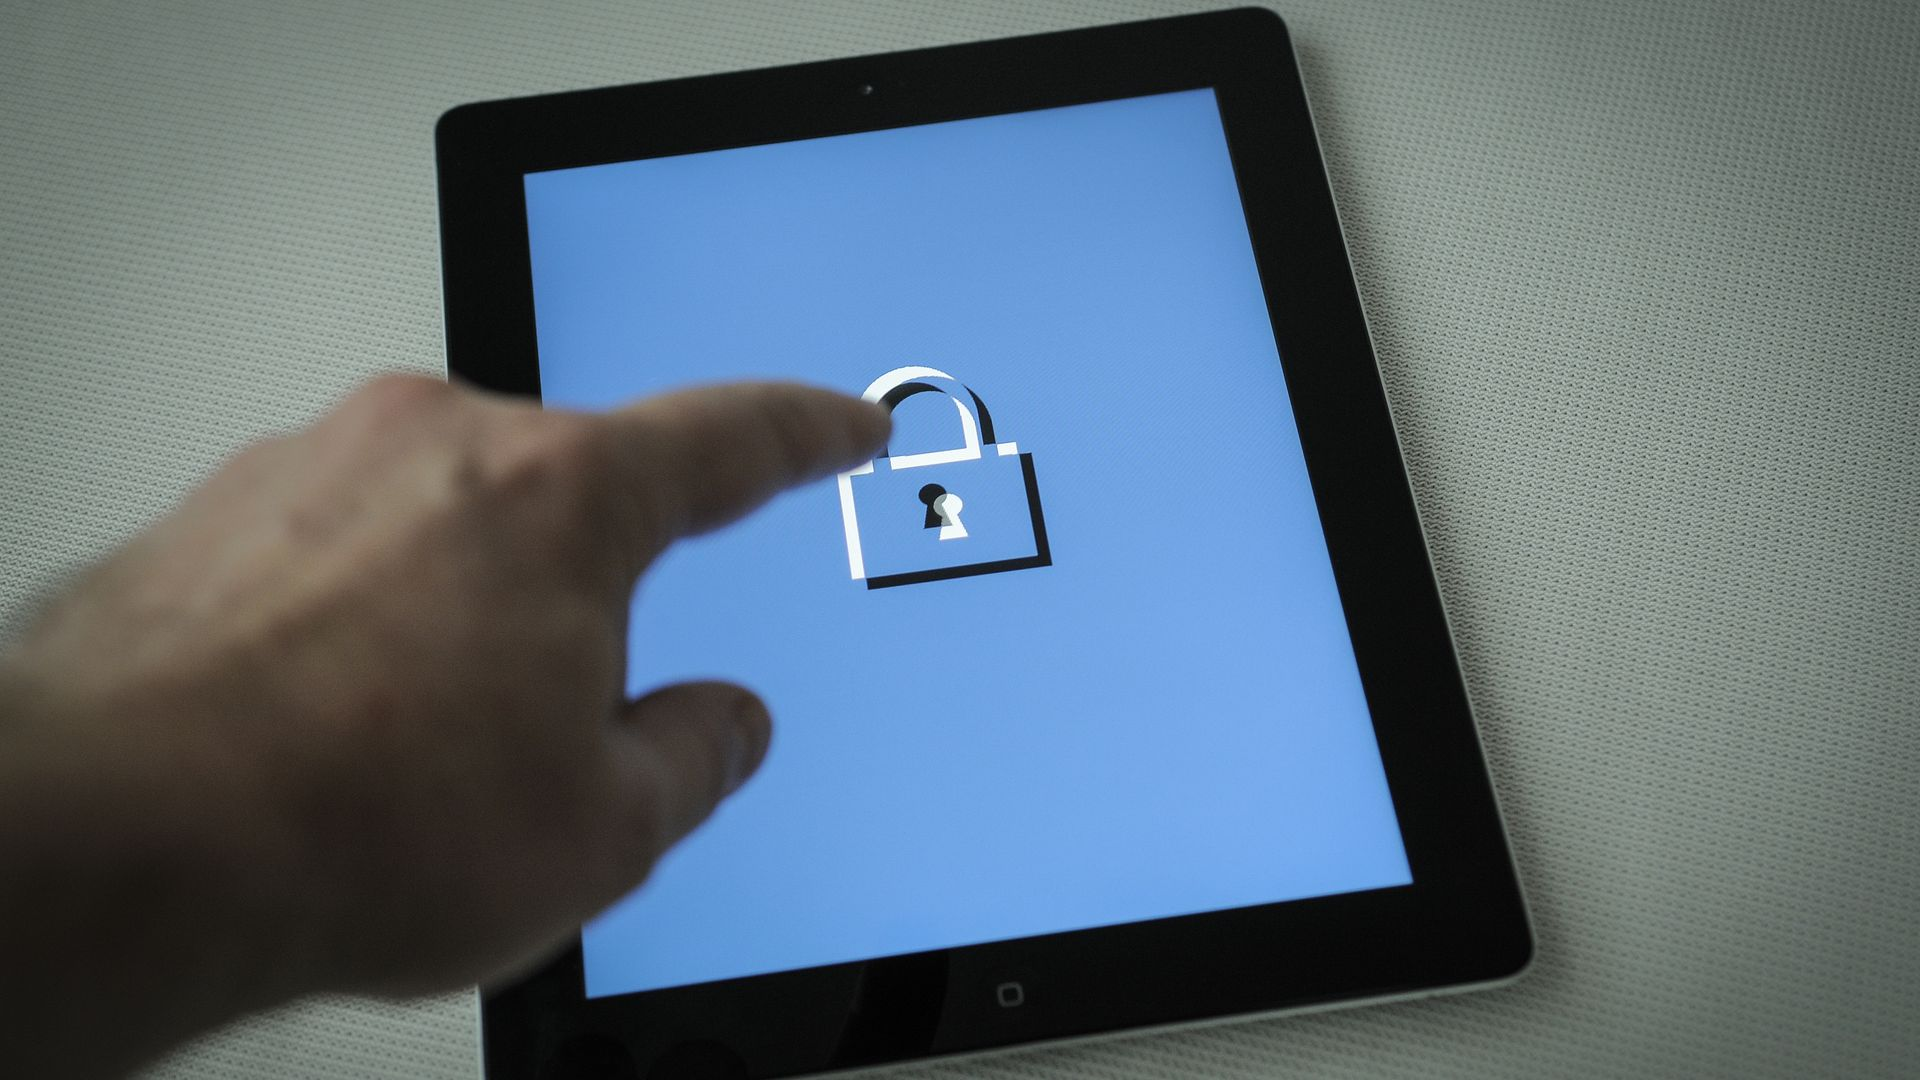 Finger pointing at a lock illustration on a tablet